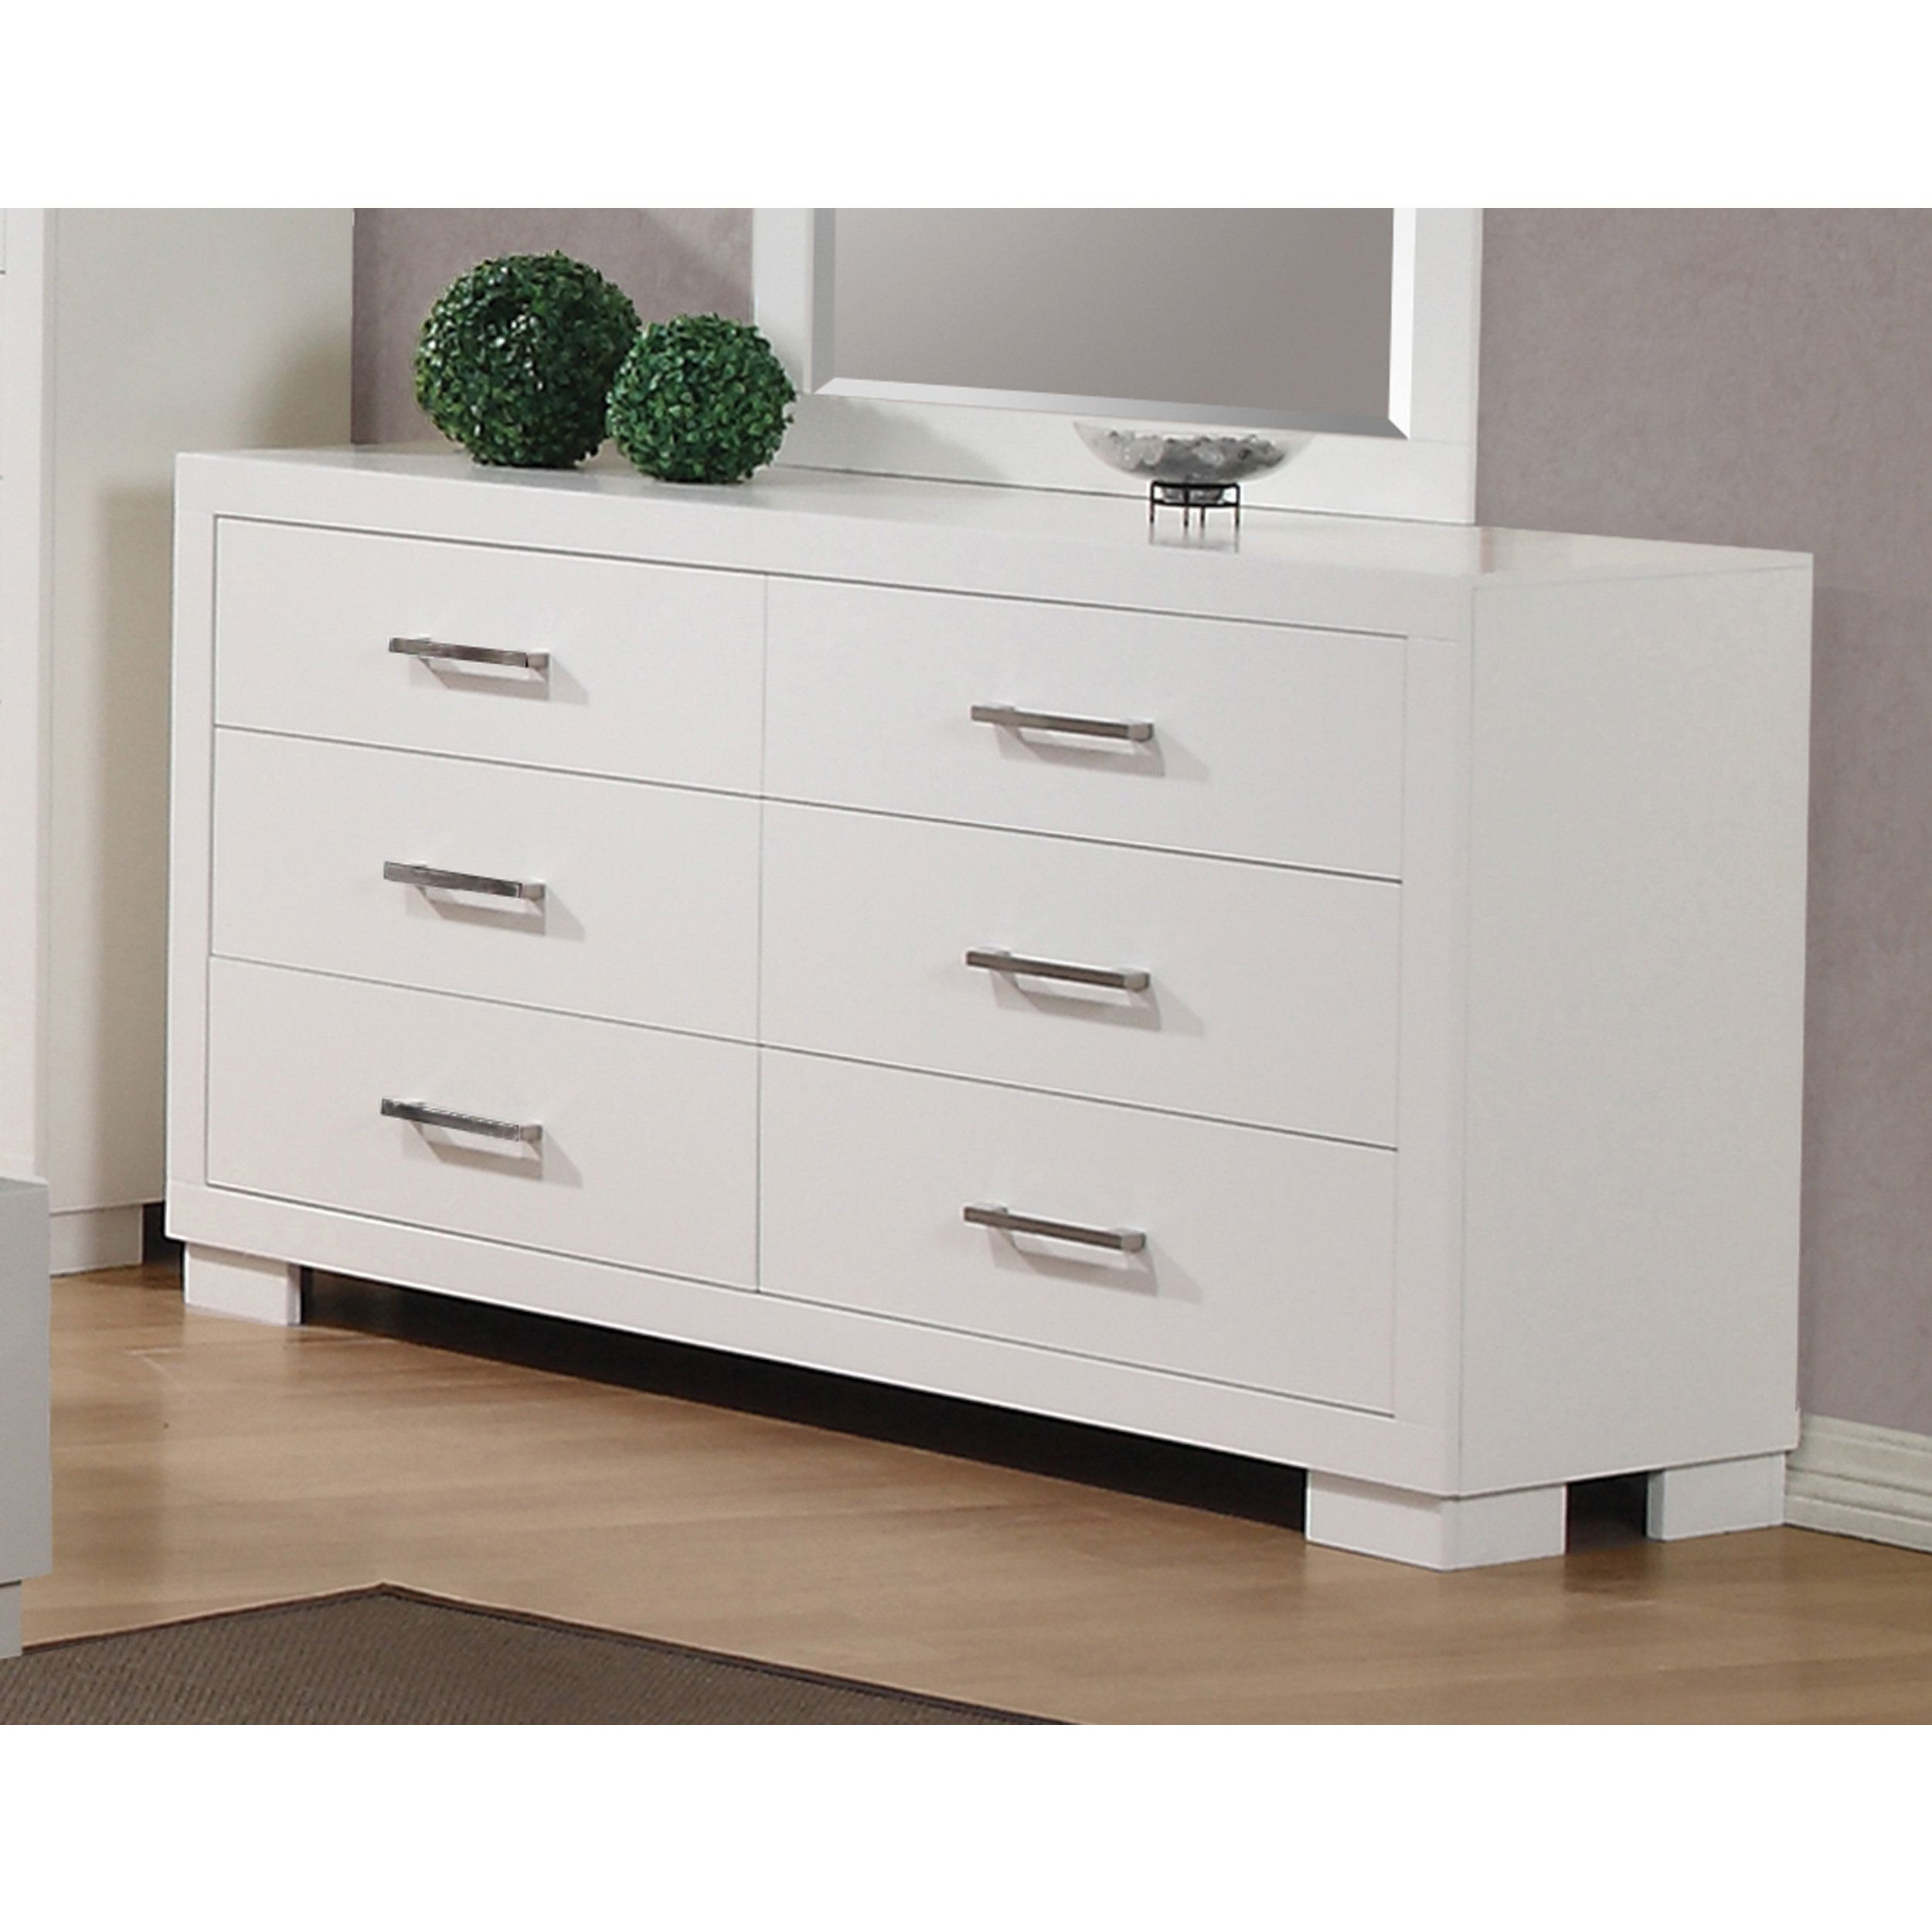 white dresser home goods free shipping on orders over 45 at overstock com your home goods store get 5 in rewards with club o